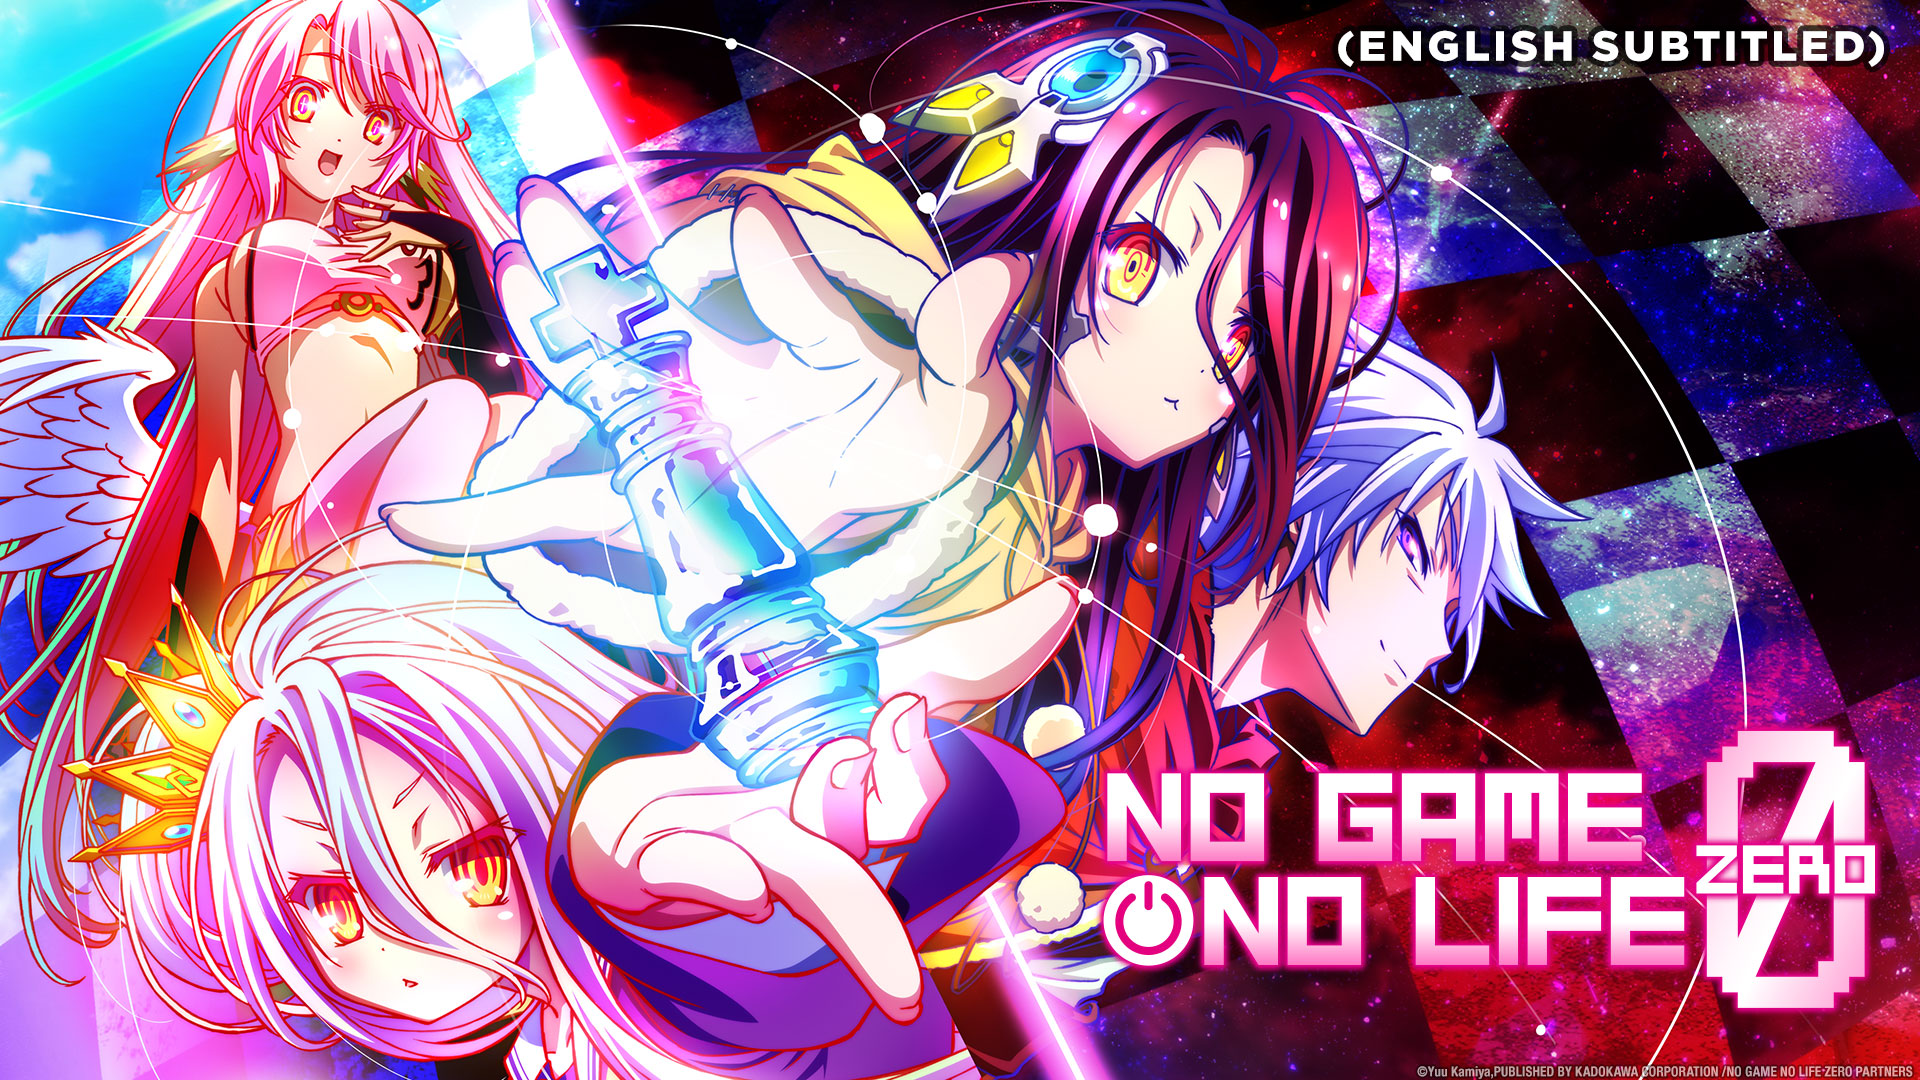 No Game, No Life Zero (English Subtitled)